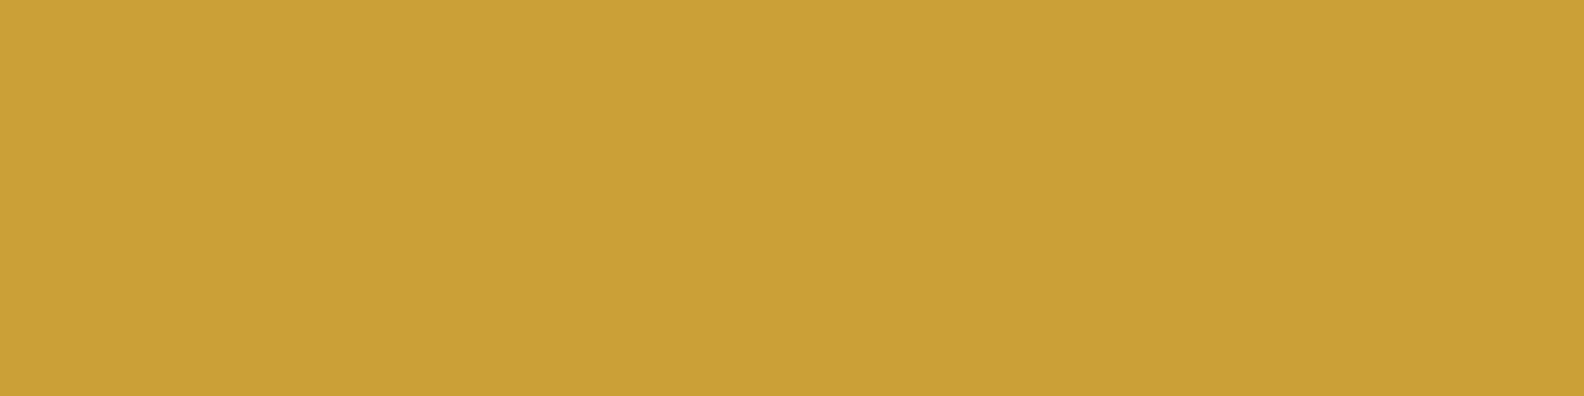 1584x396 Satin Sheen Gold Solid Color Background